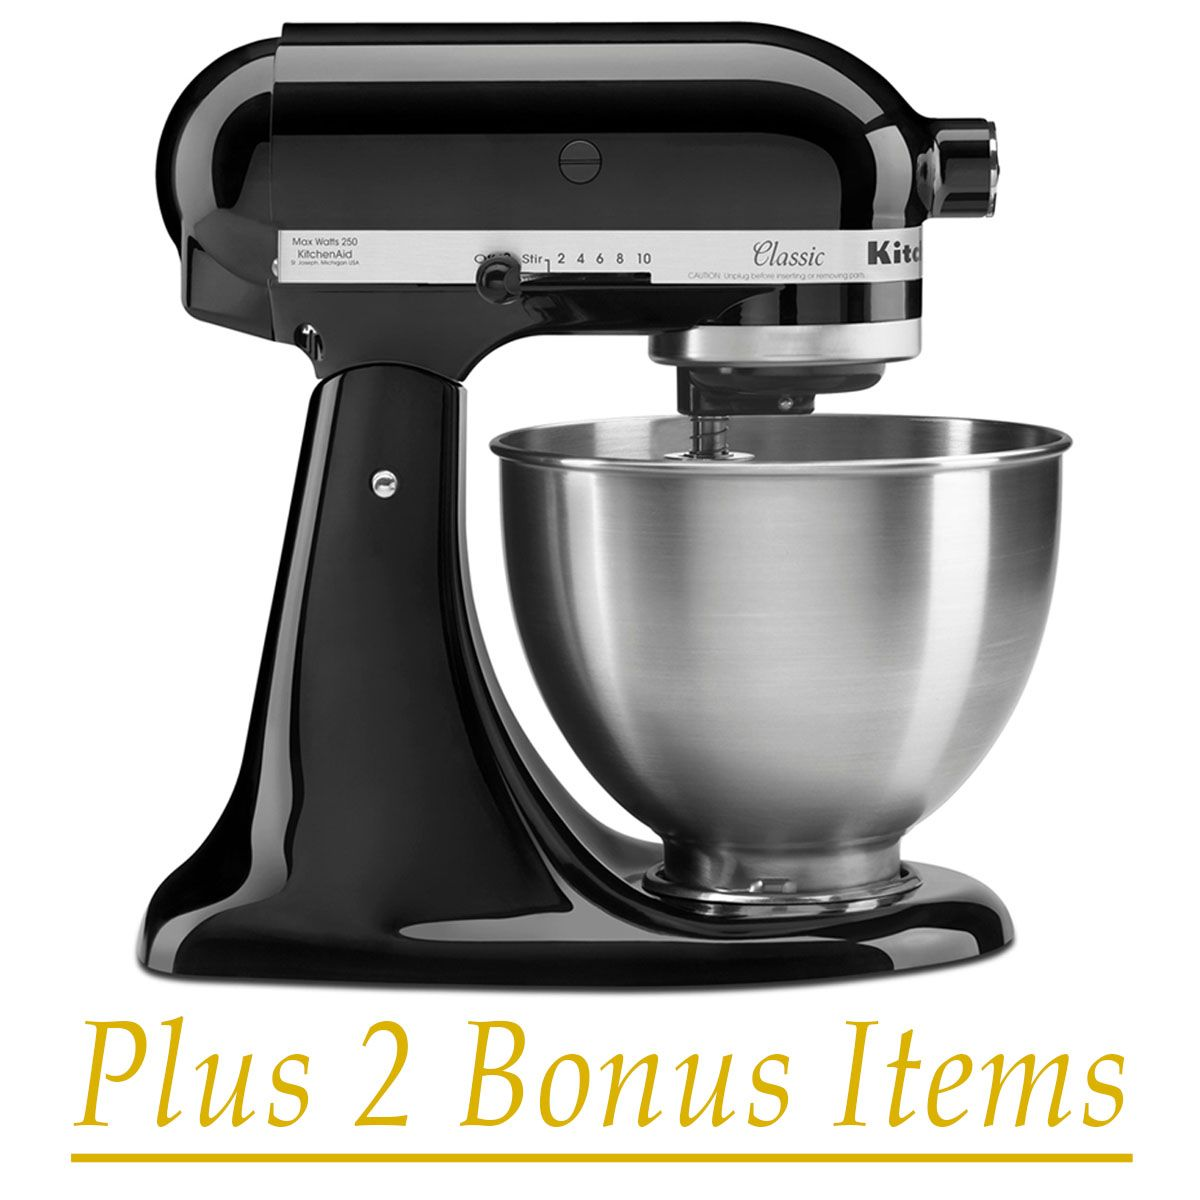 Enter to win a kitchenaid 45quart classic series stand